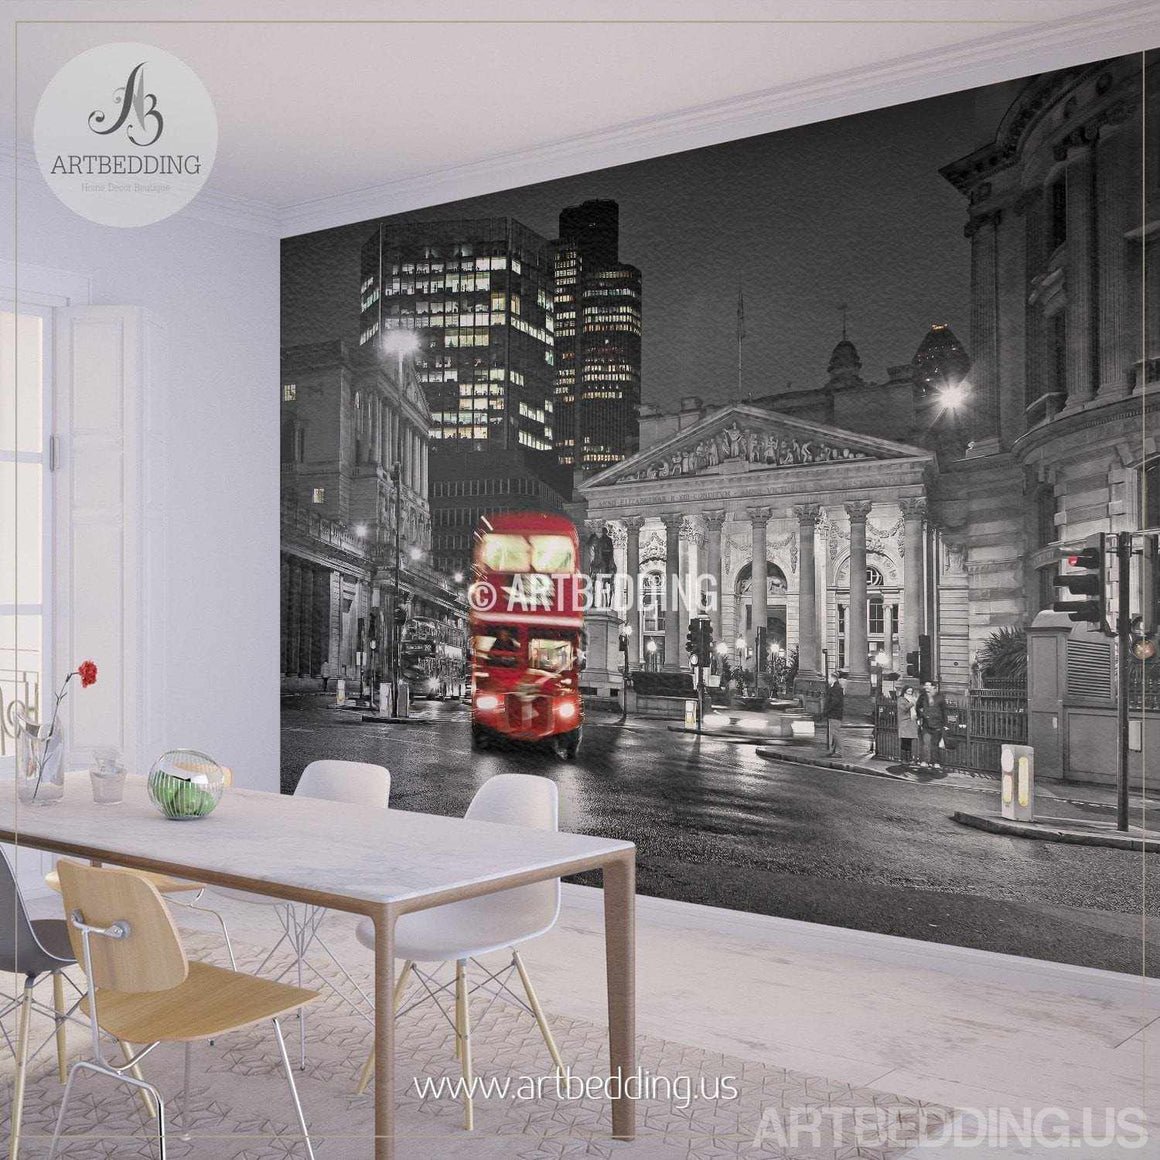 Wall murals peel and stick self adhesive vinyl hd print page 2 london in black and red wall mural london city photo mural london wall decor amipublicfo Choice Image